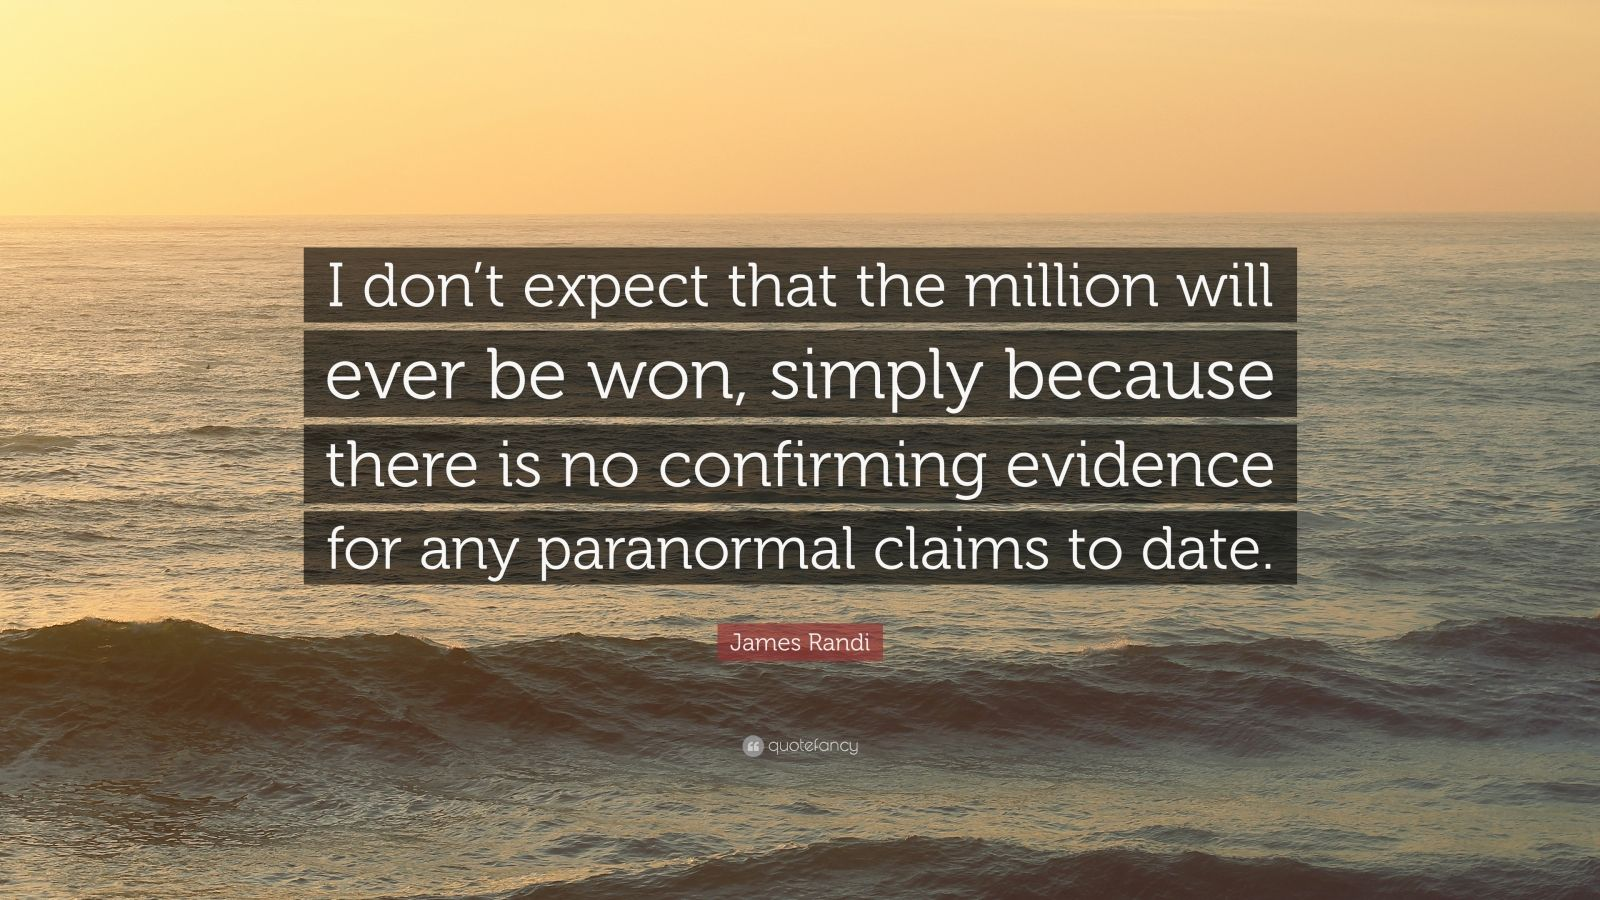 """James Randi Quote: """"I don't expect that the million will ever be won, simply because there is no confirming evidence for any paranormal claims to date."""""""